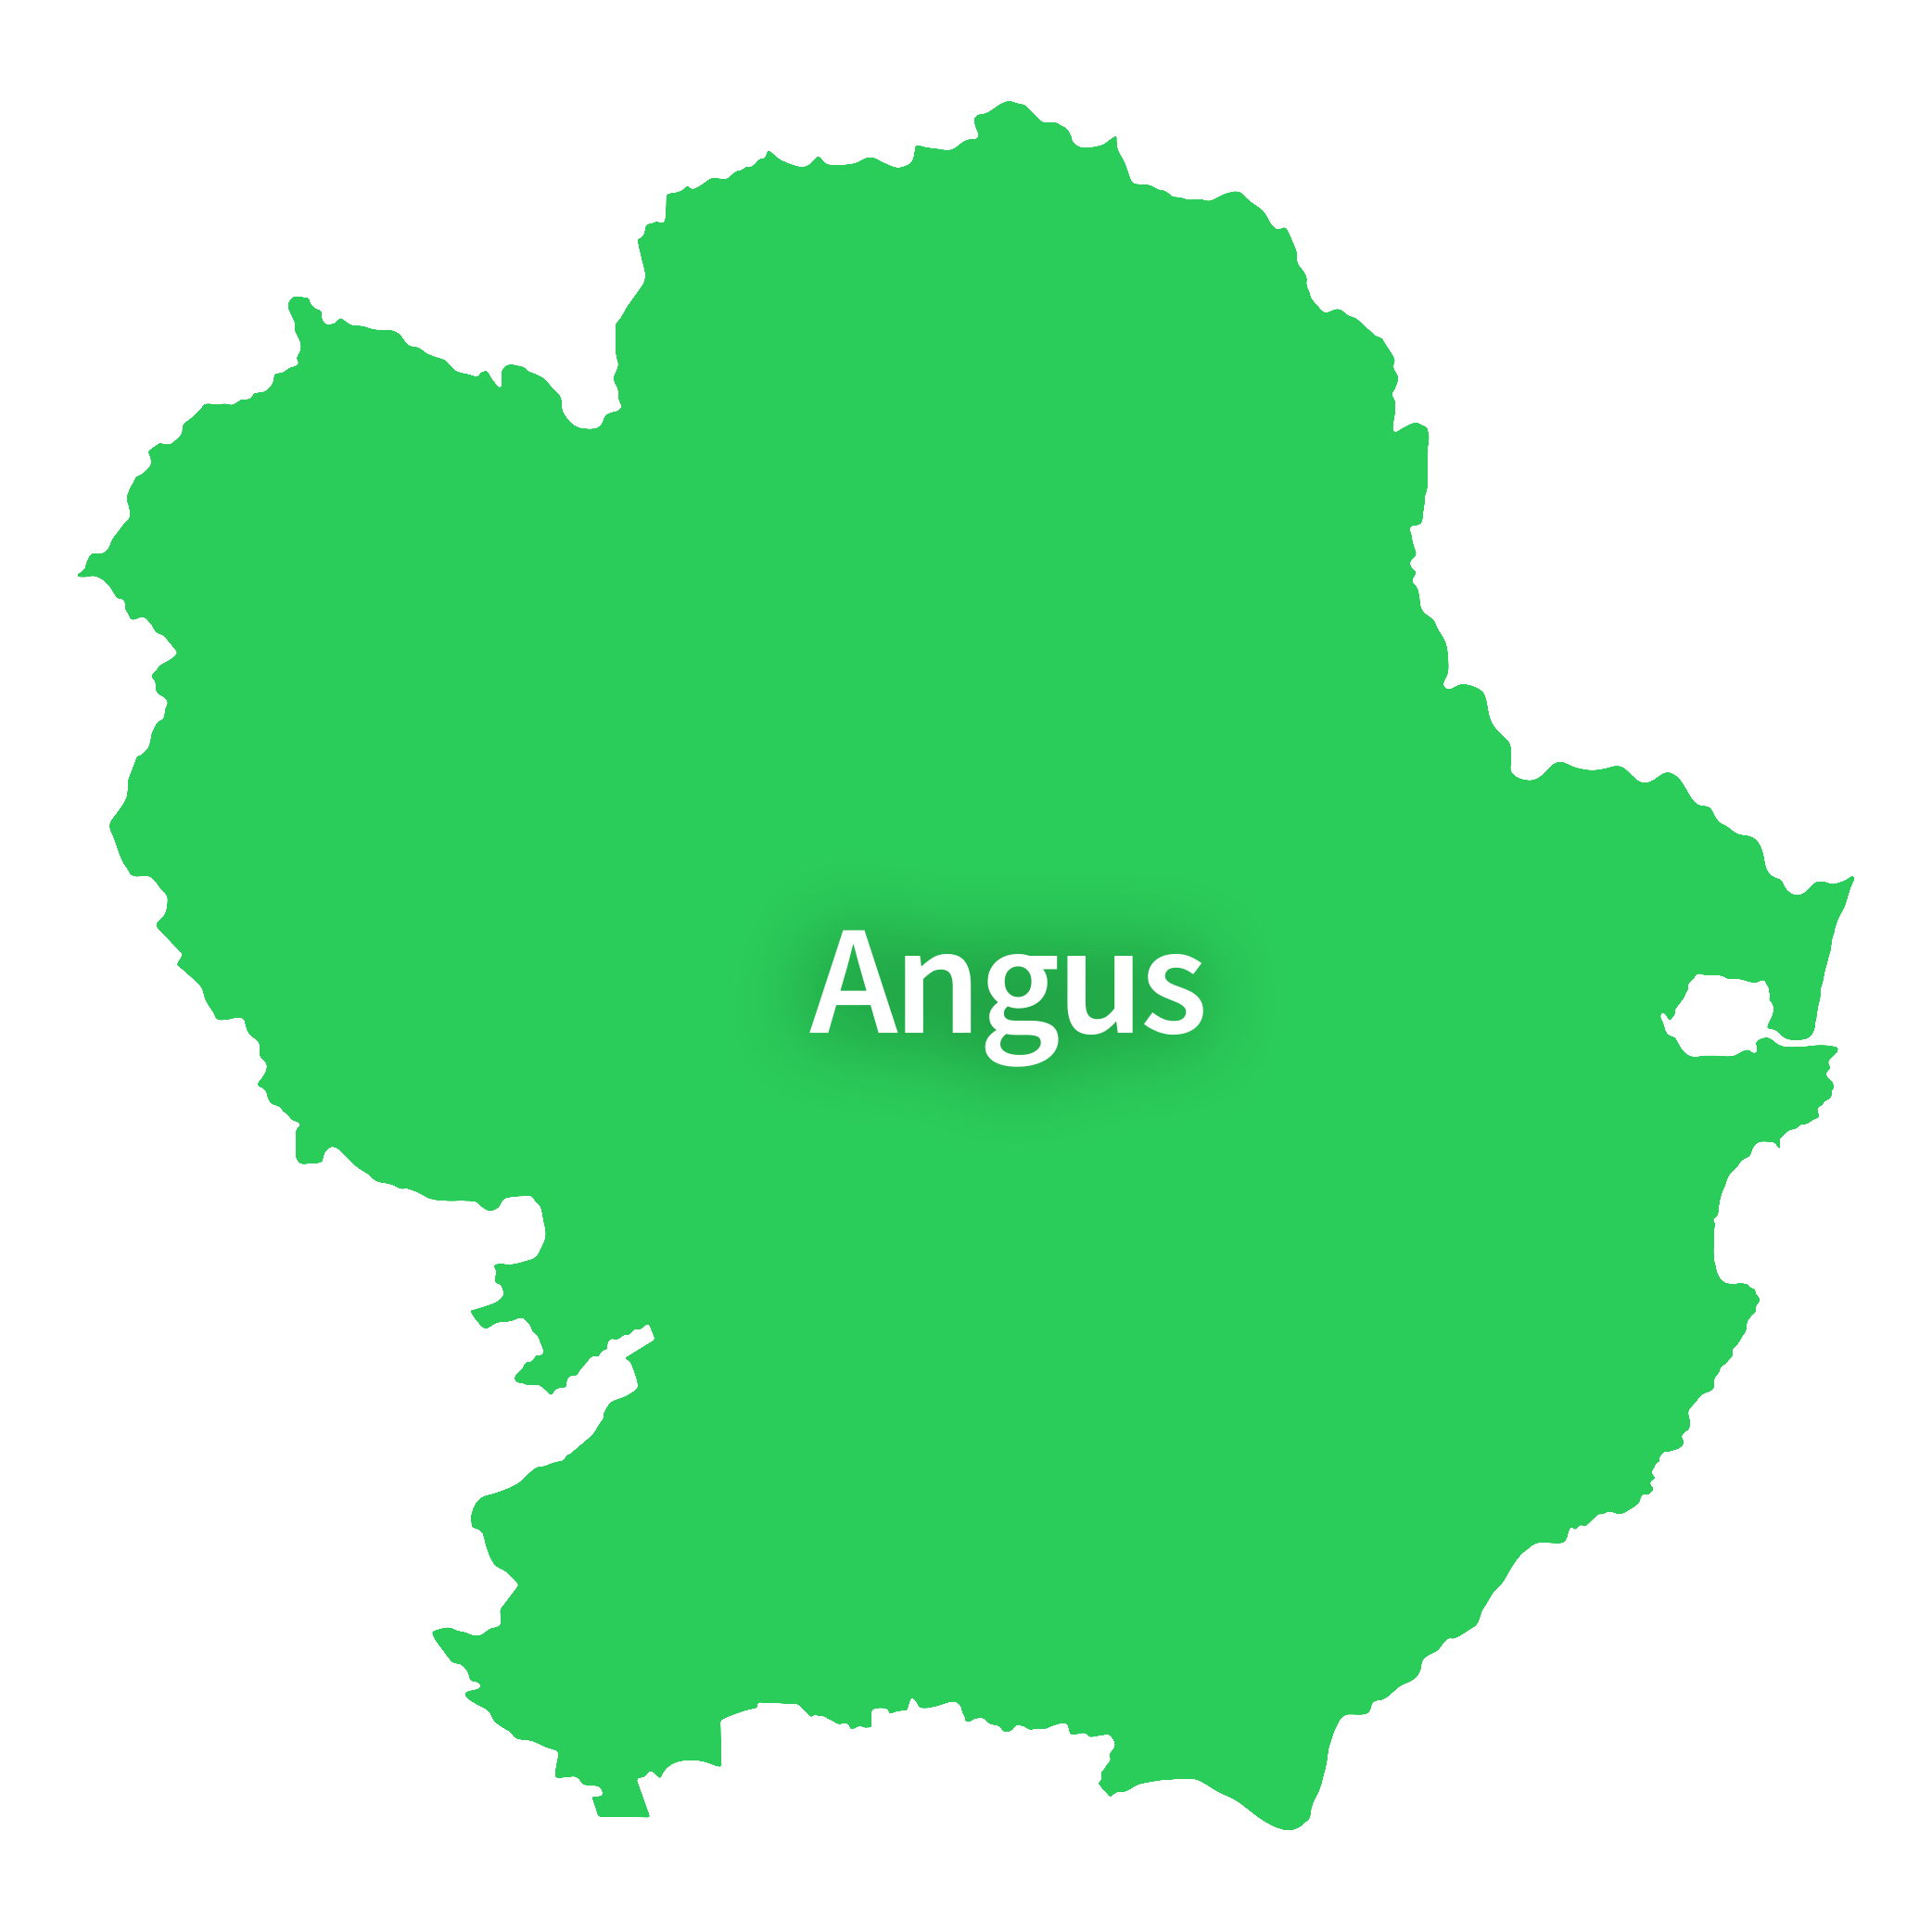 Map of Angus